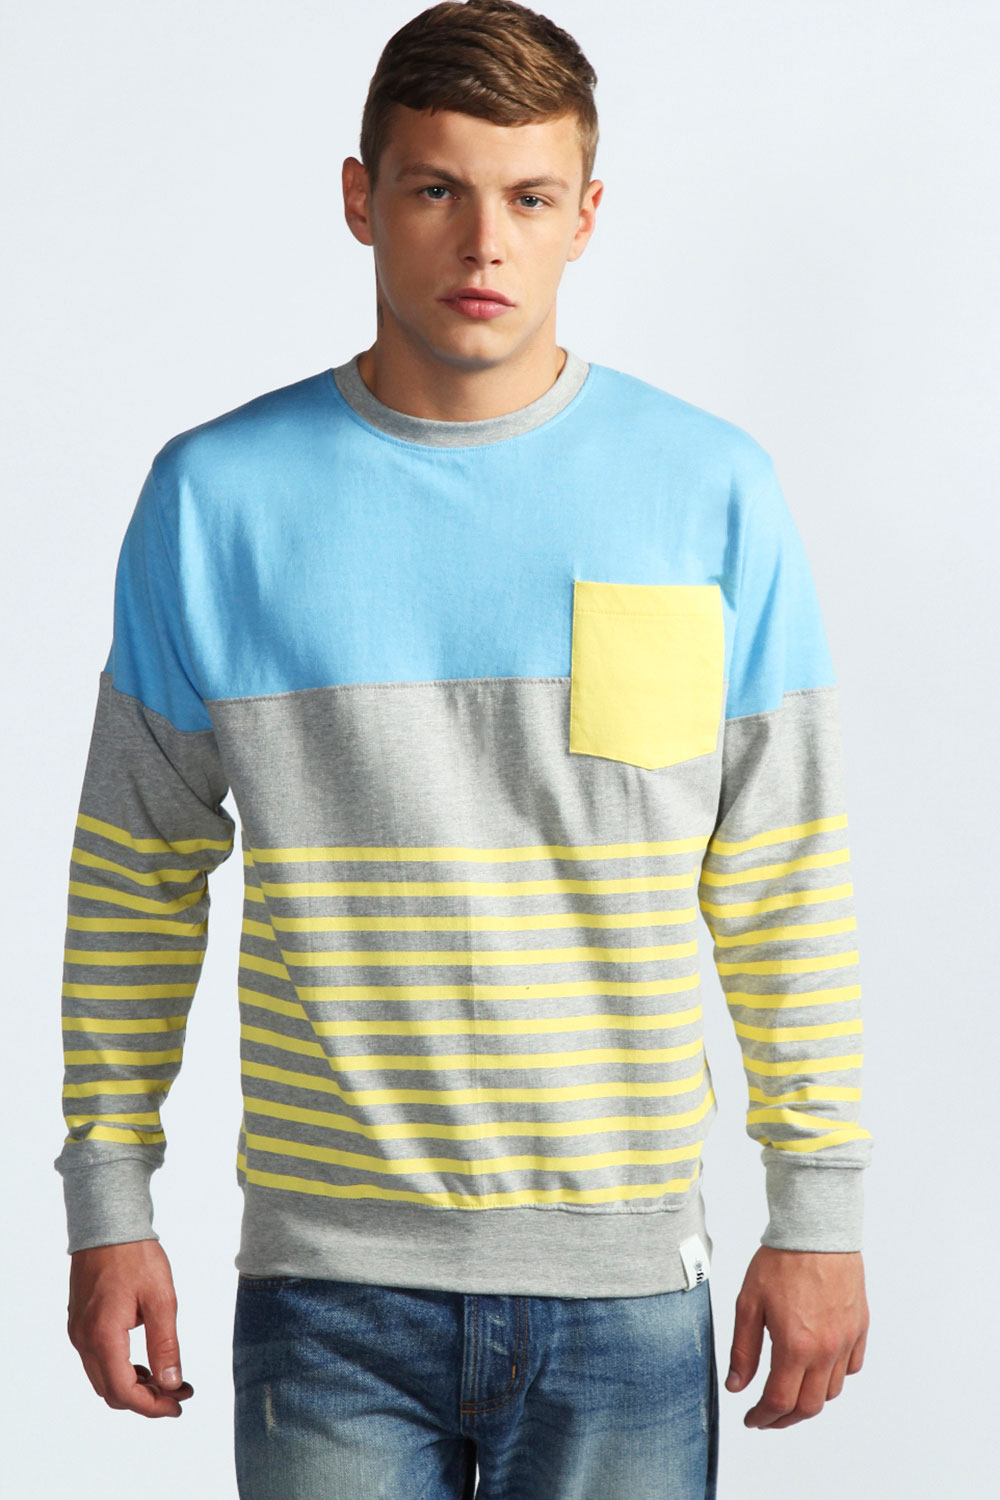 Boohoo-Cut-And-Sew-Crew-Neck-Sweater